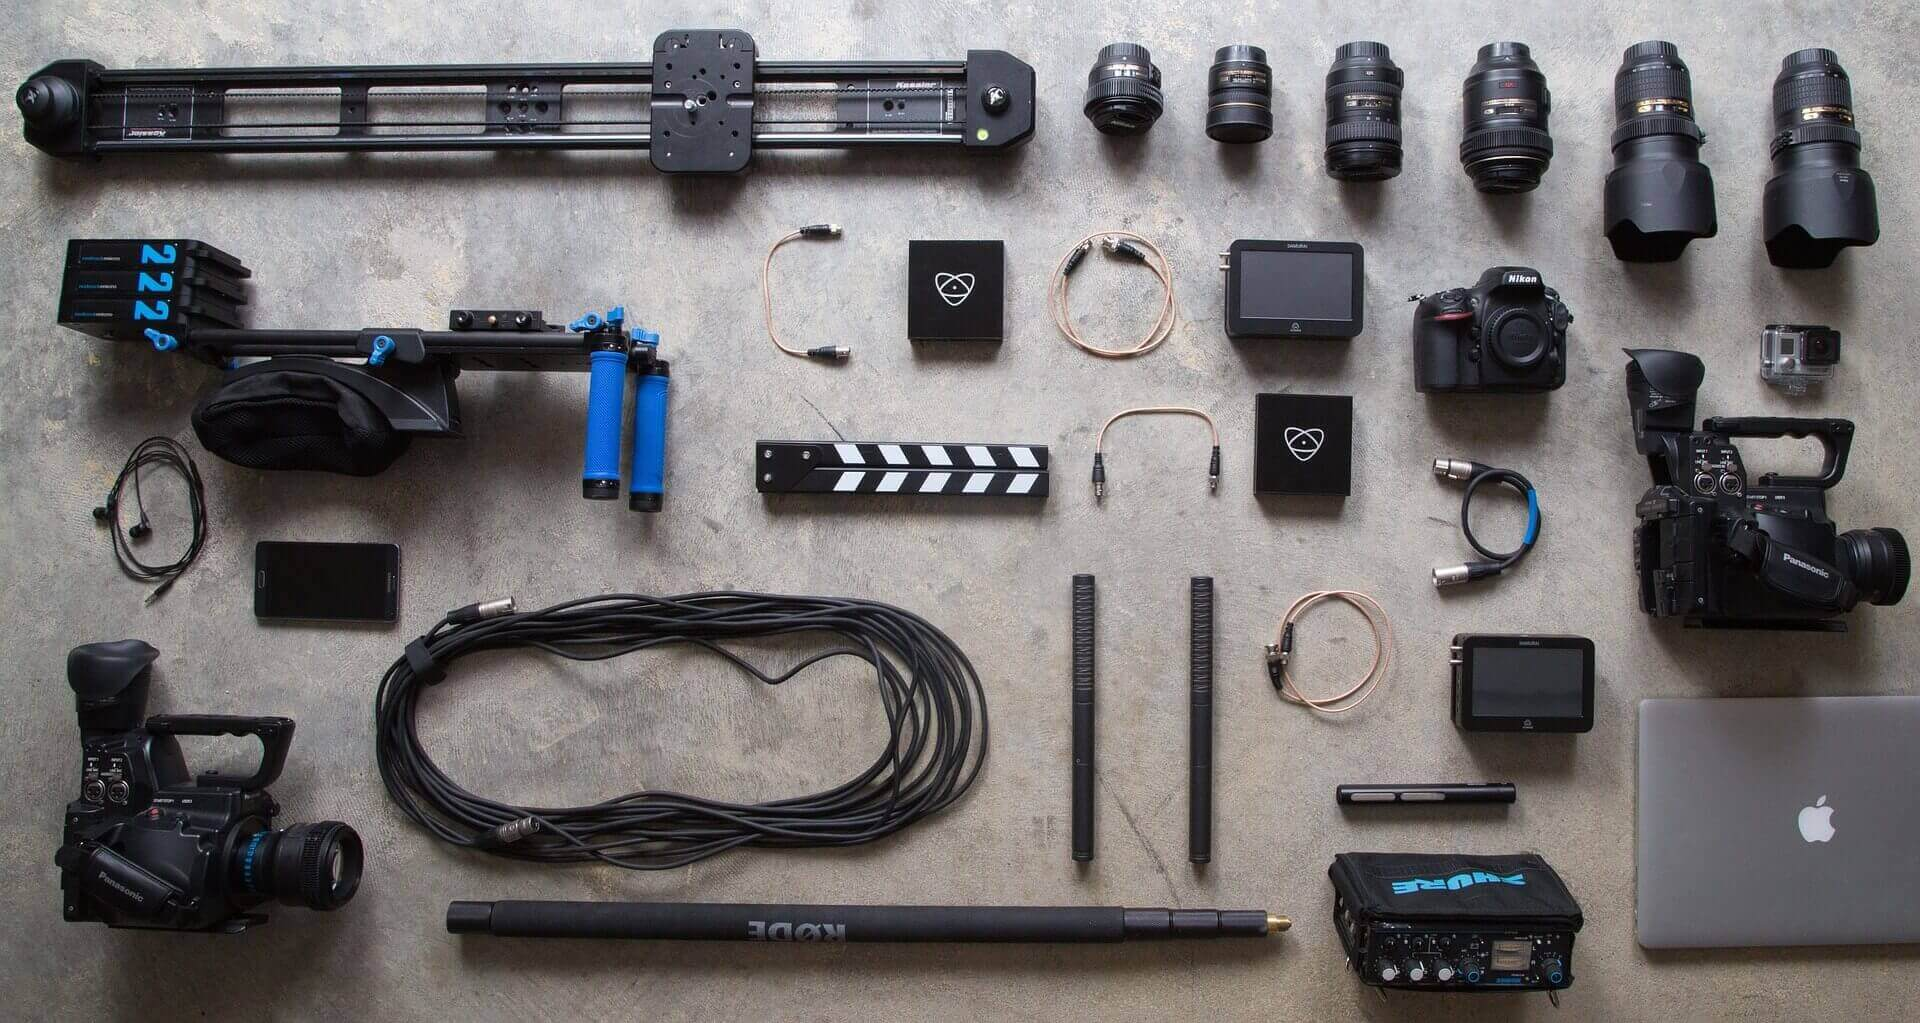 3D Printed DSLR Accessories Essential For Filmmakers | All3DP